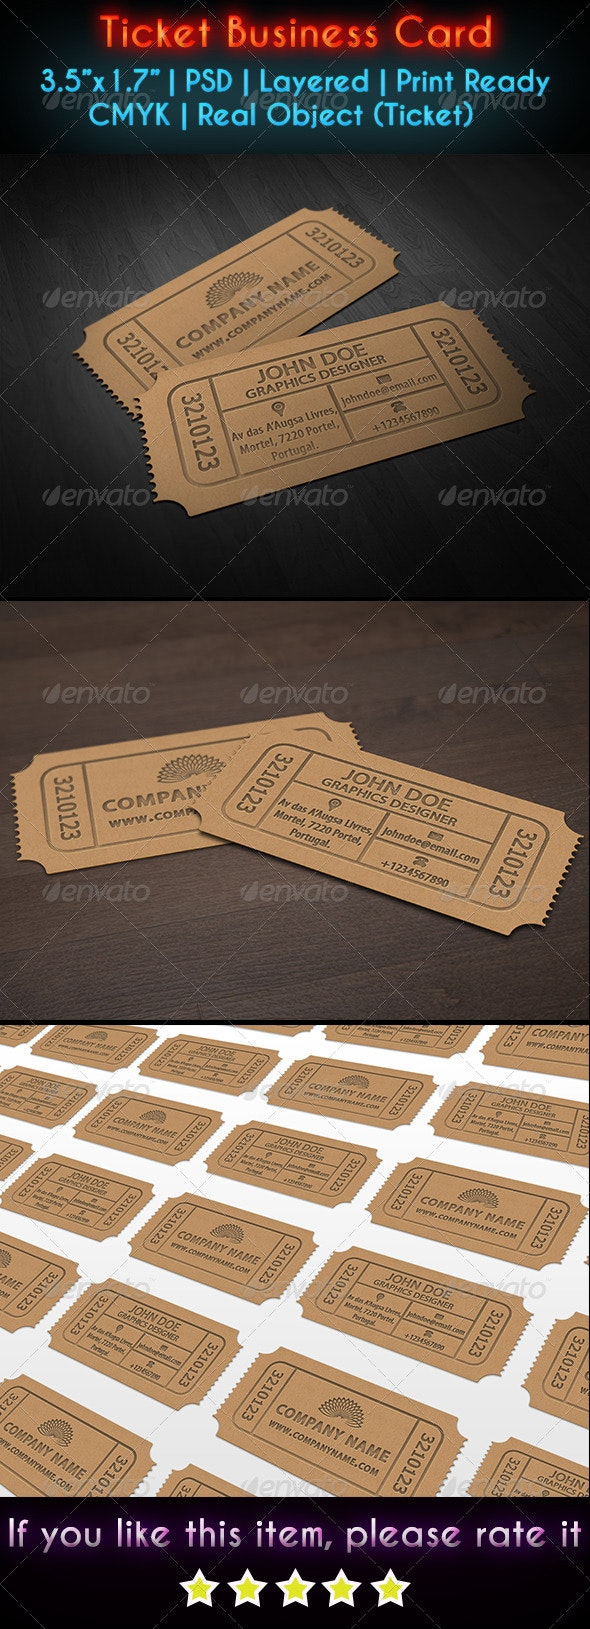 Ticket Business Card - Real Objects Business Cards